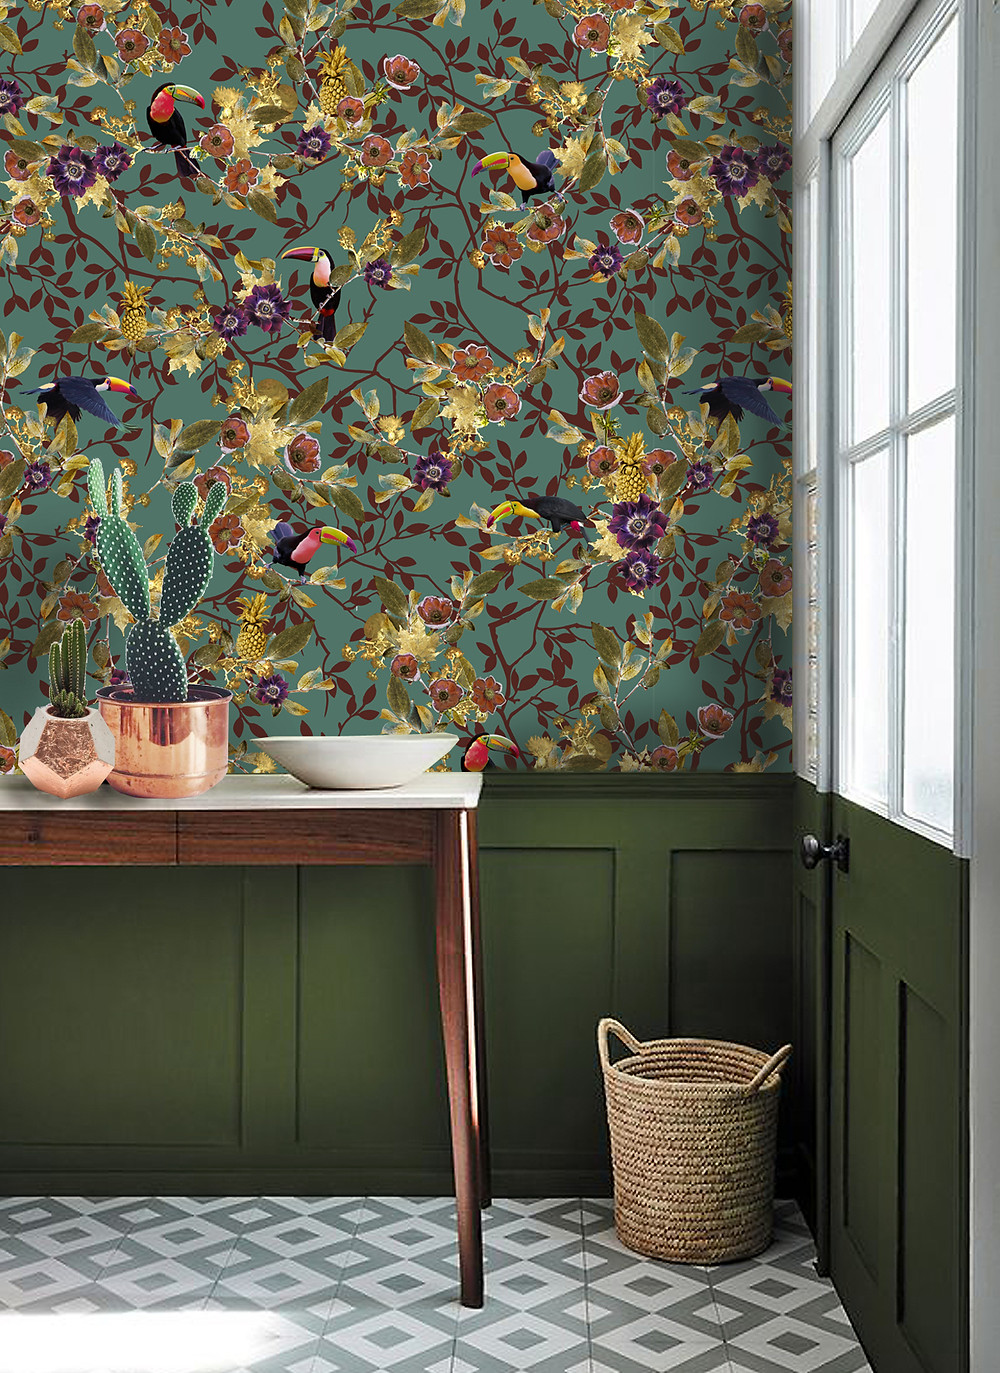 Decorating with green wallpaper with toucans by Good and Craft, Good & Craft